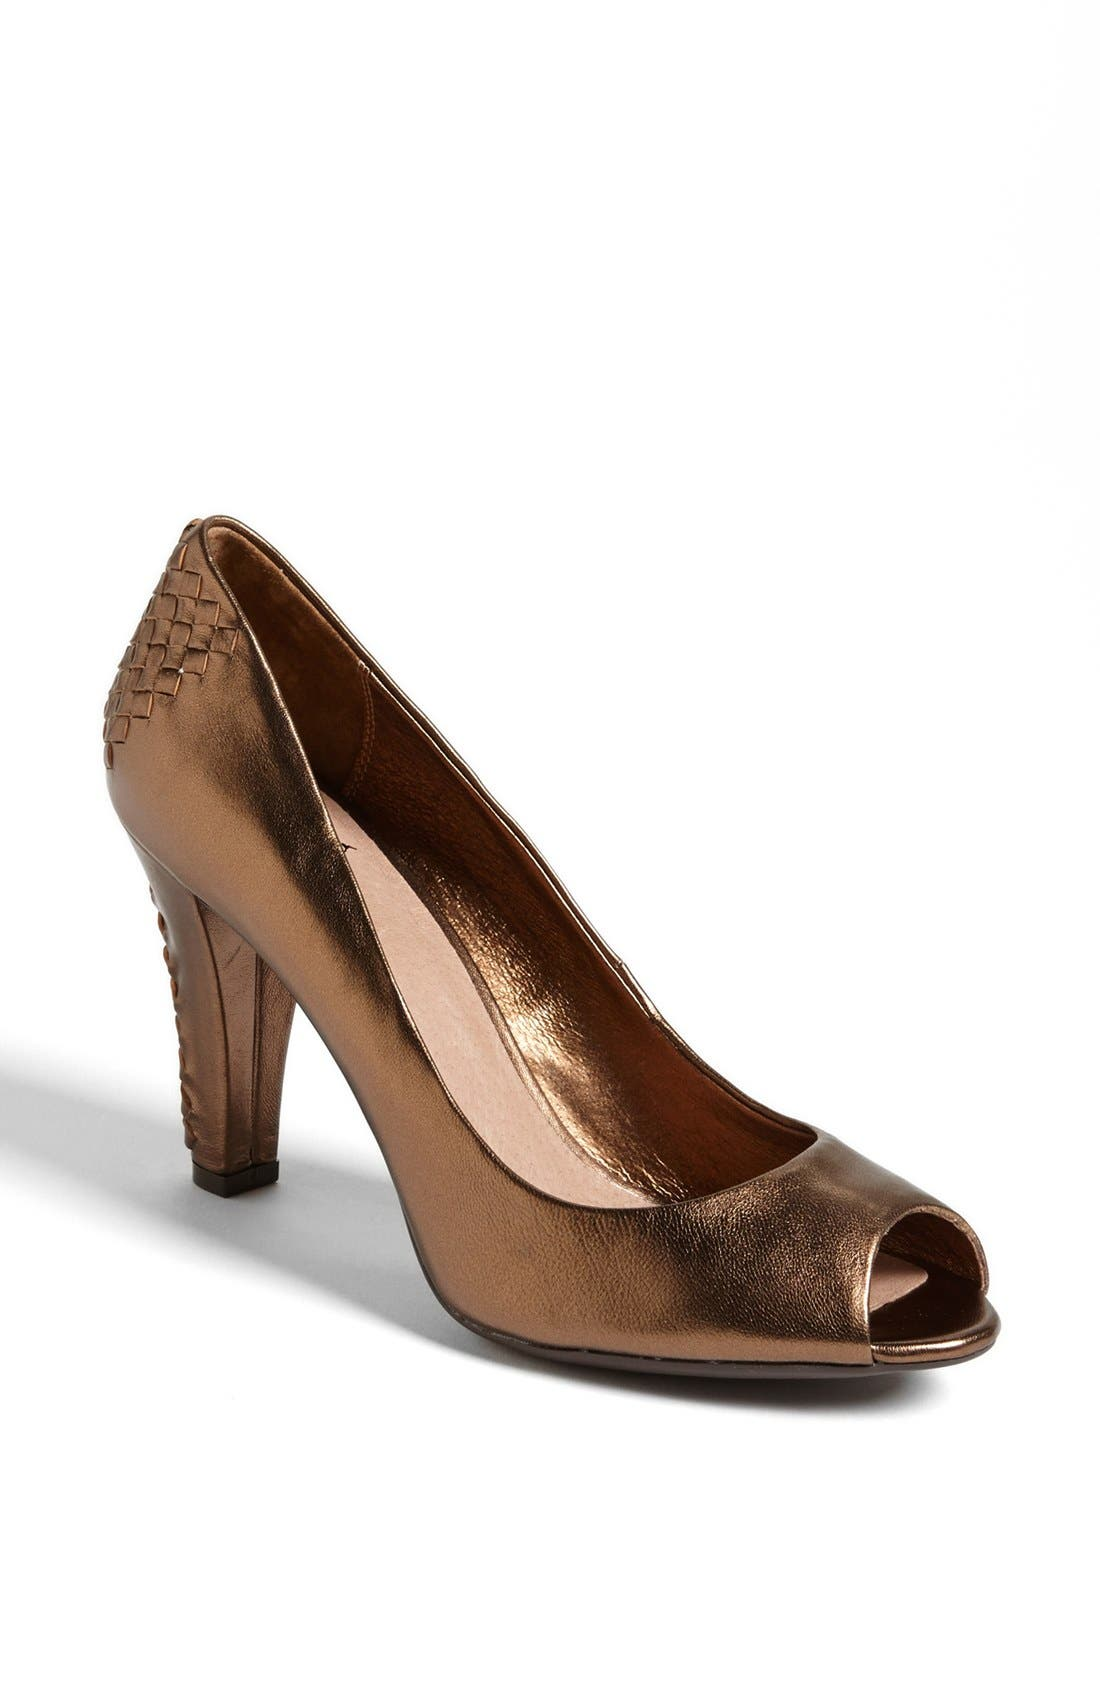 Main Image - Elliott Lucca 'Andrea' Pump (Online Only)